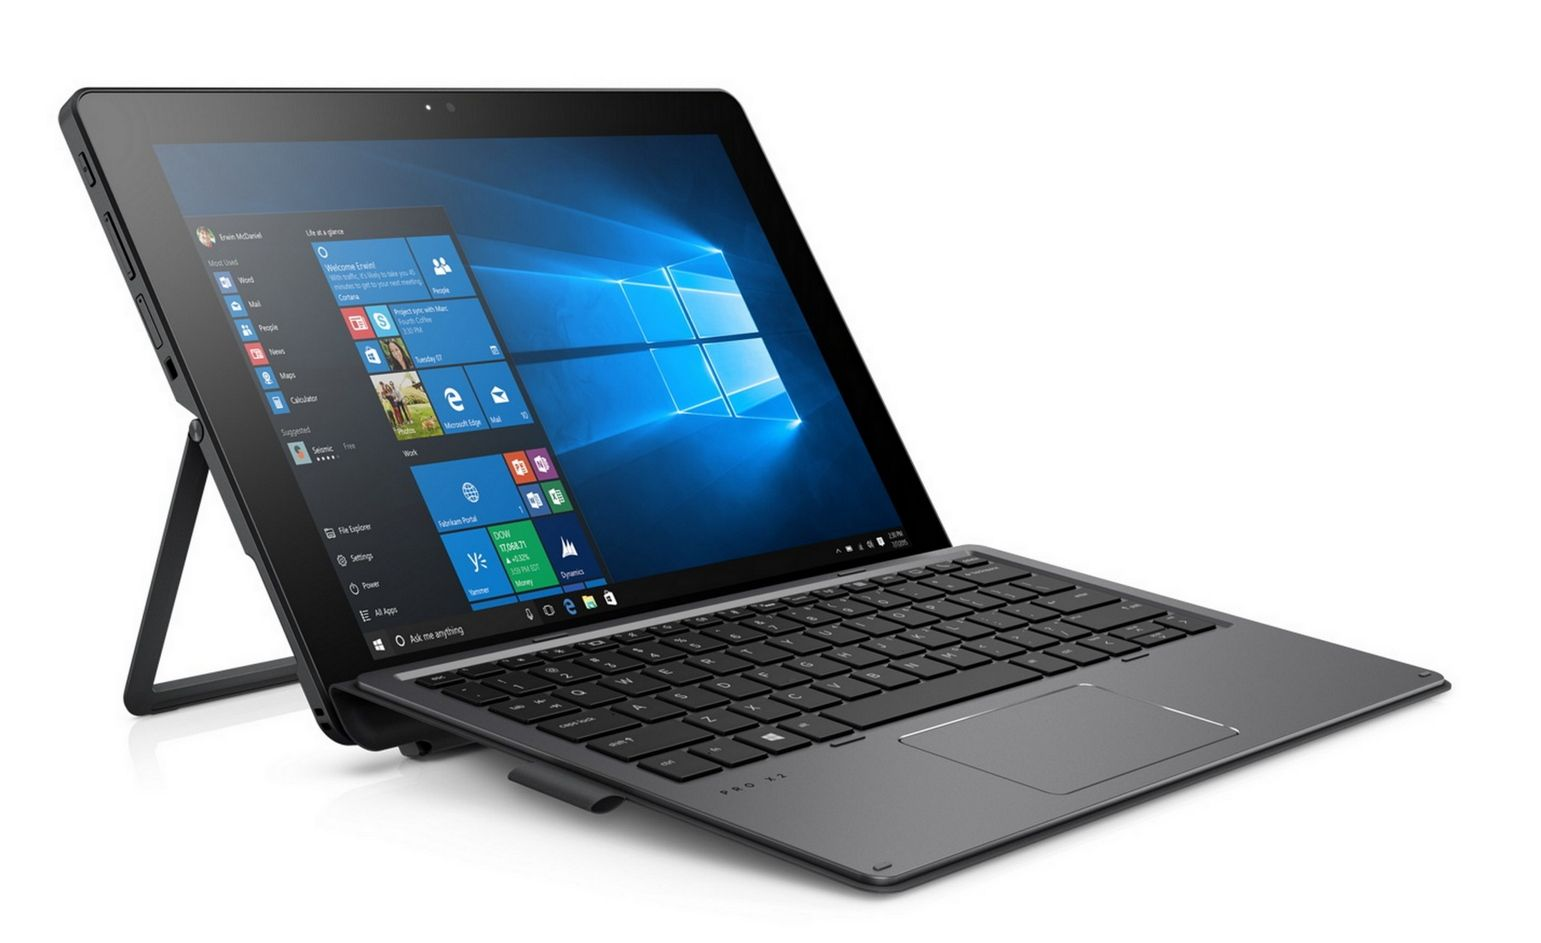 HP launches a new Pro X2 612 G2 tablet running Windows 10 that you can open and upgrade. Here are the tech specs and the important details.